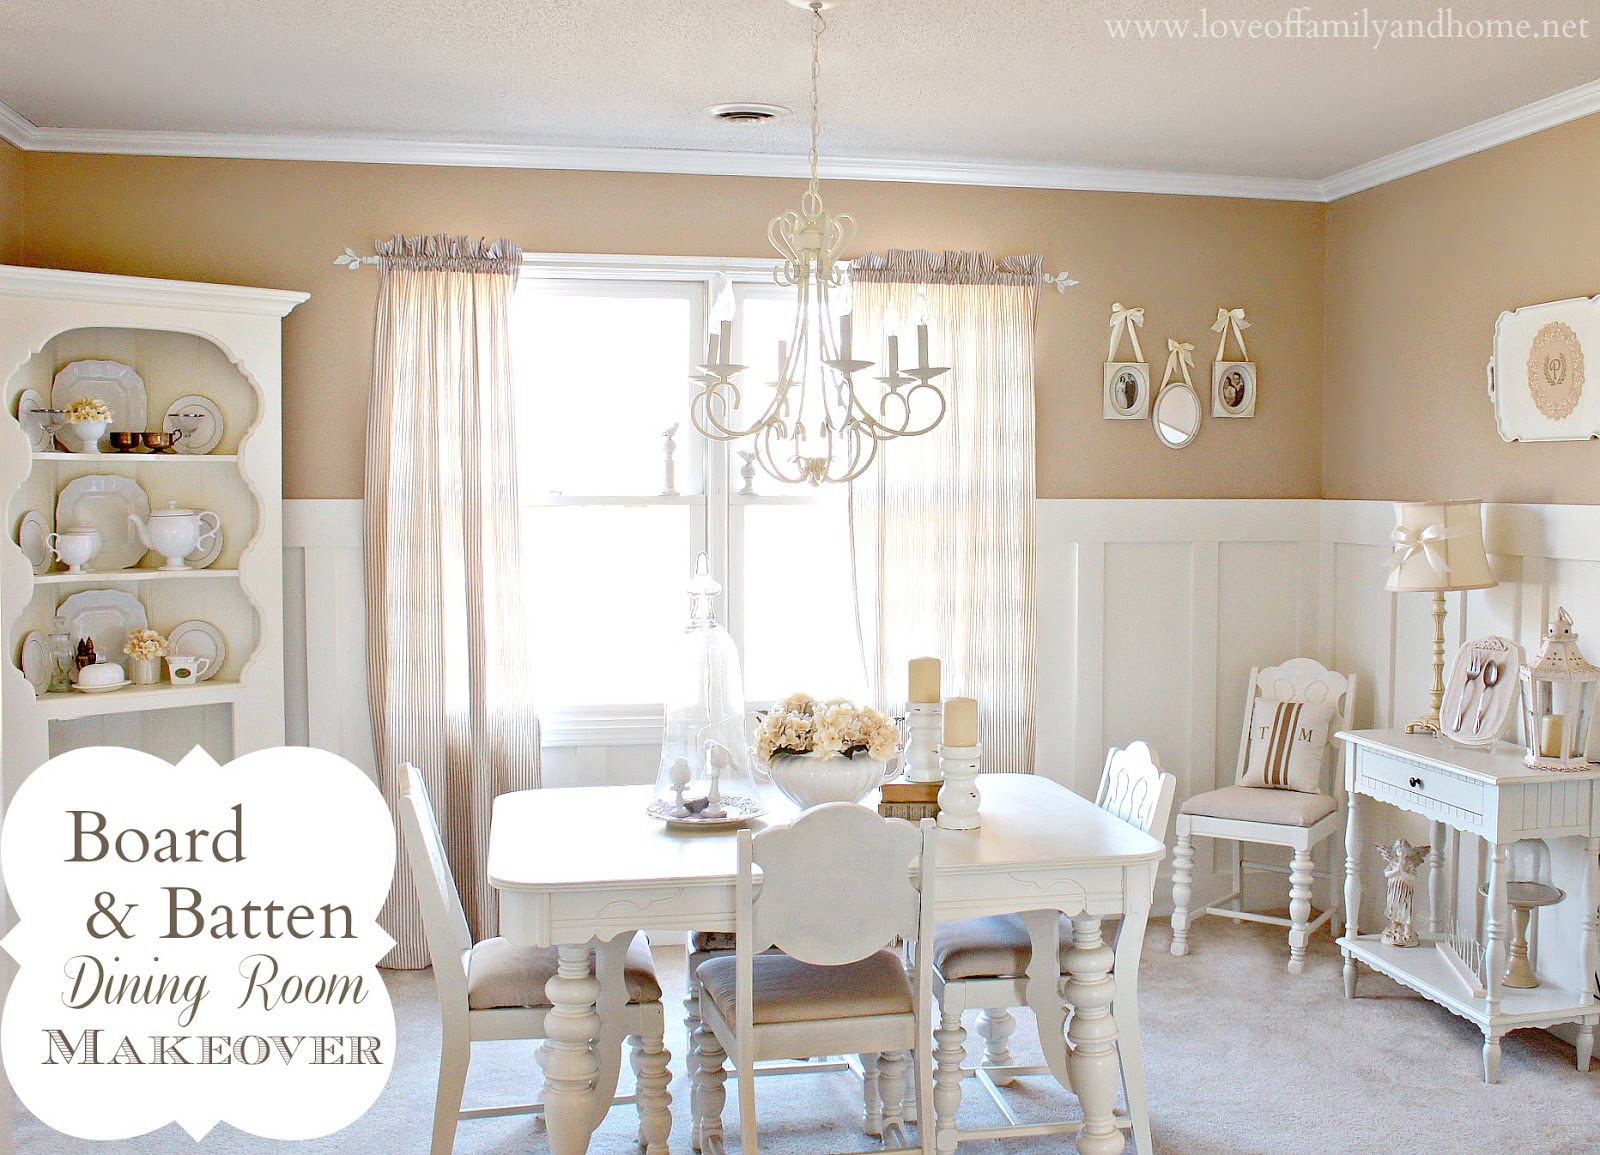 Dining Room Makeover Board And Batten Dining Room Makeover Love Of Family And Home